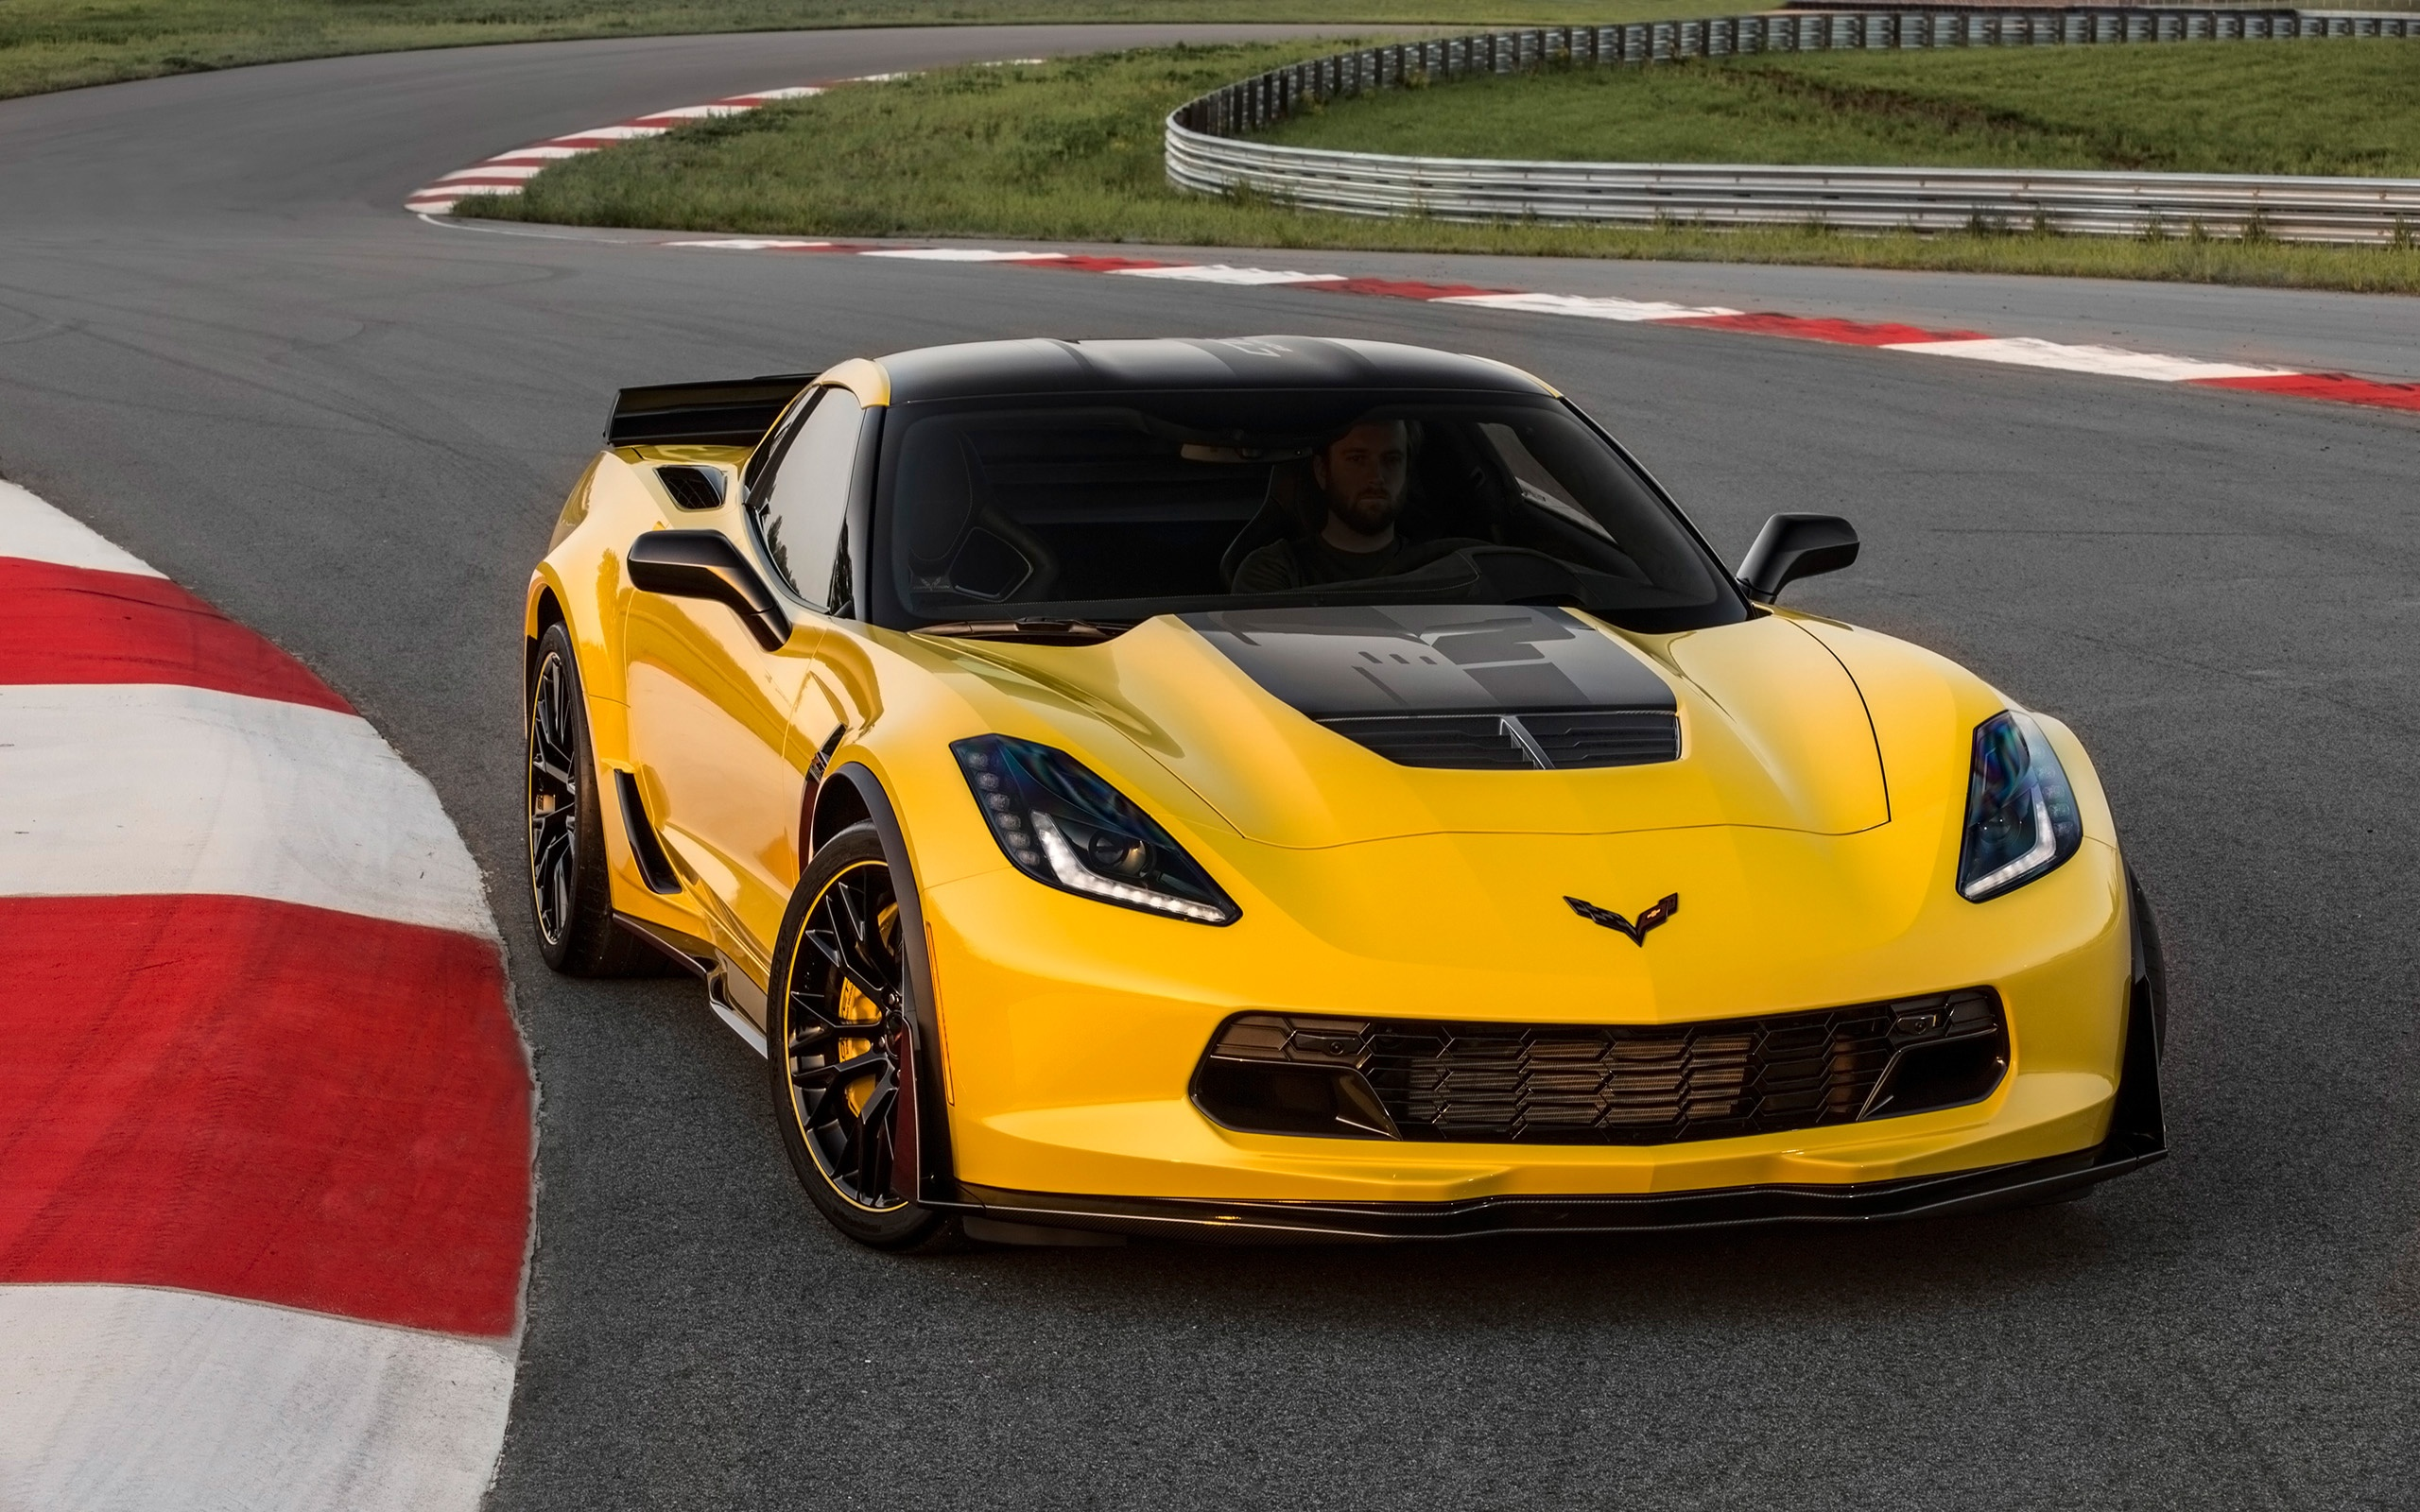 2016 Chevrolet Corvette Z06 C7 R Edition Wallpaper HD Car Wallpapers 2560x1600